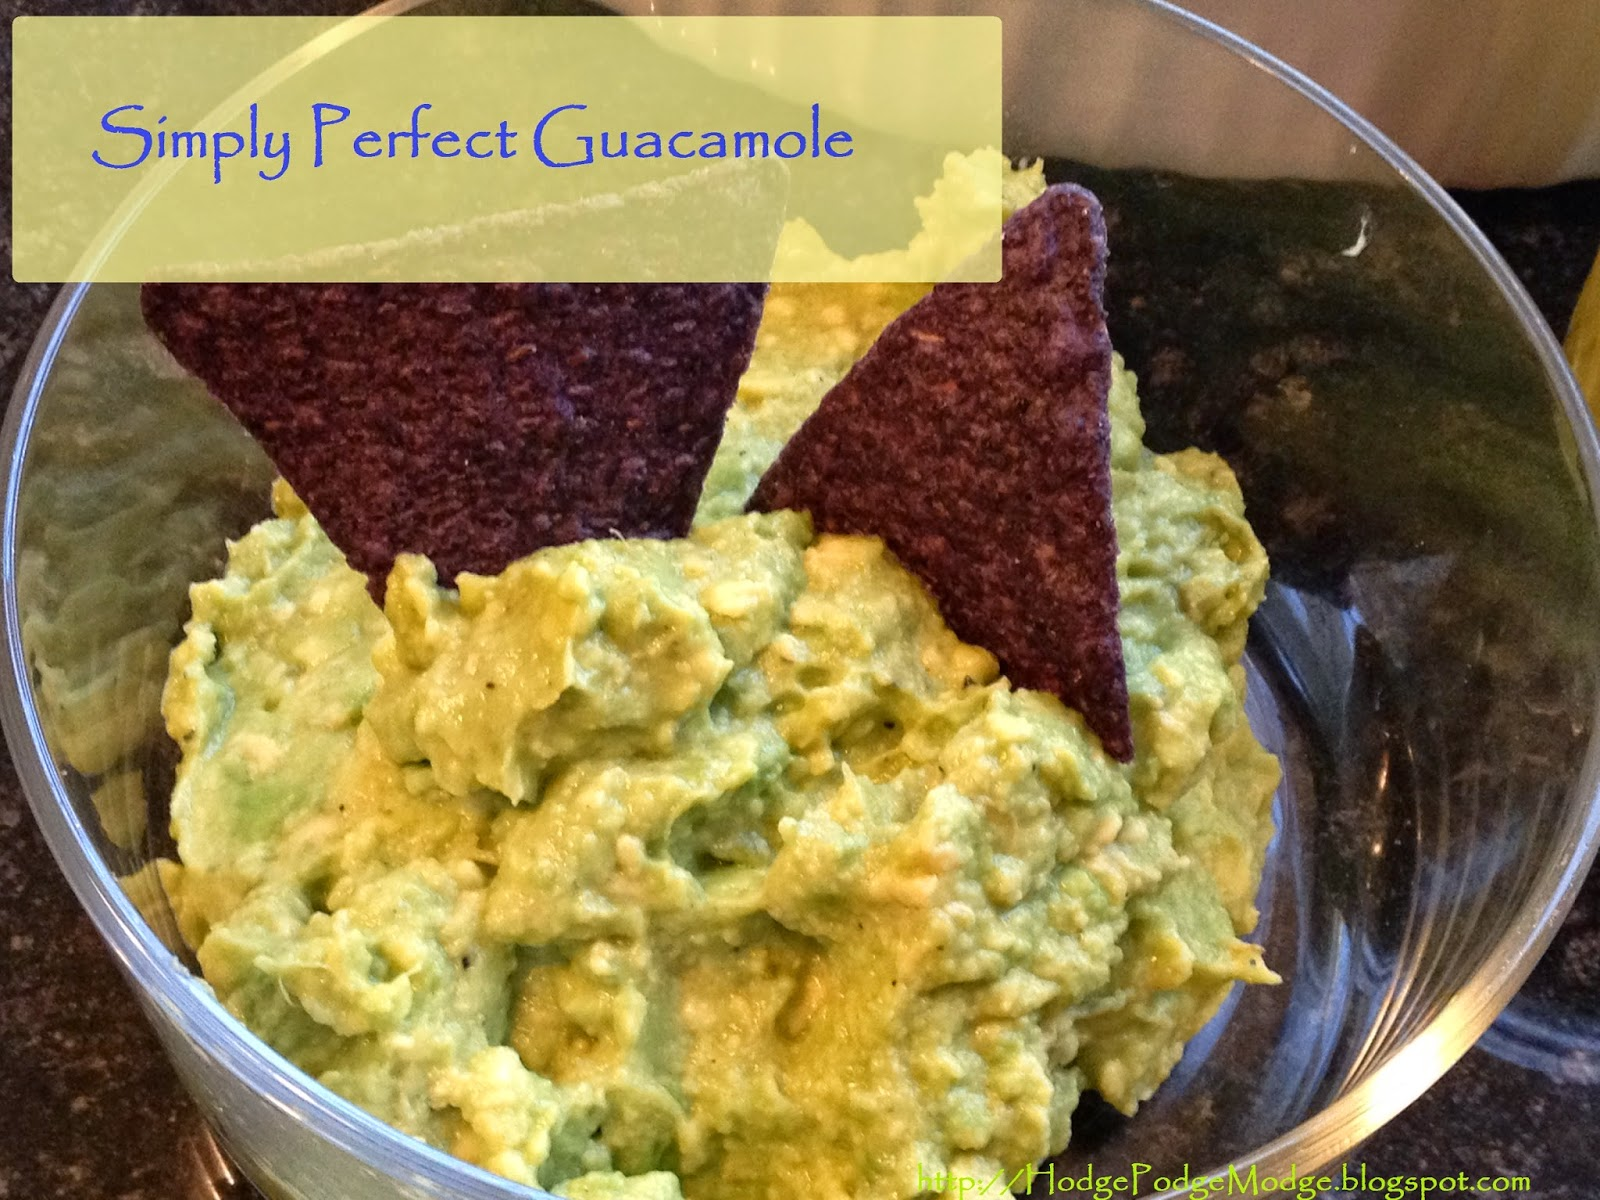 Hodge Podge Modge Podge: Simply Perfect Guacamole & Creamy Avocado ...